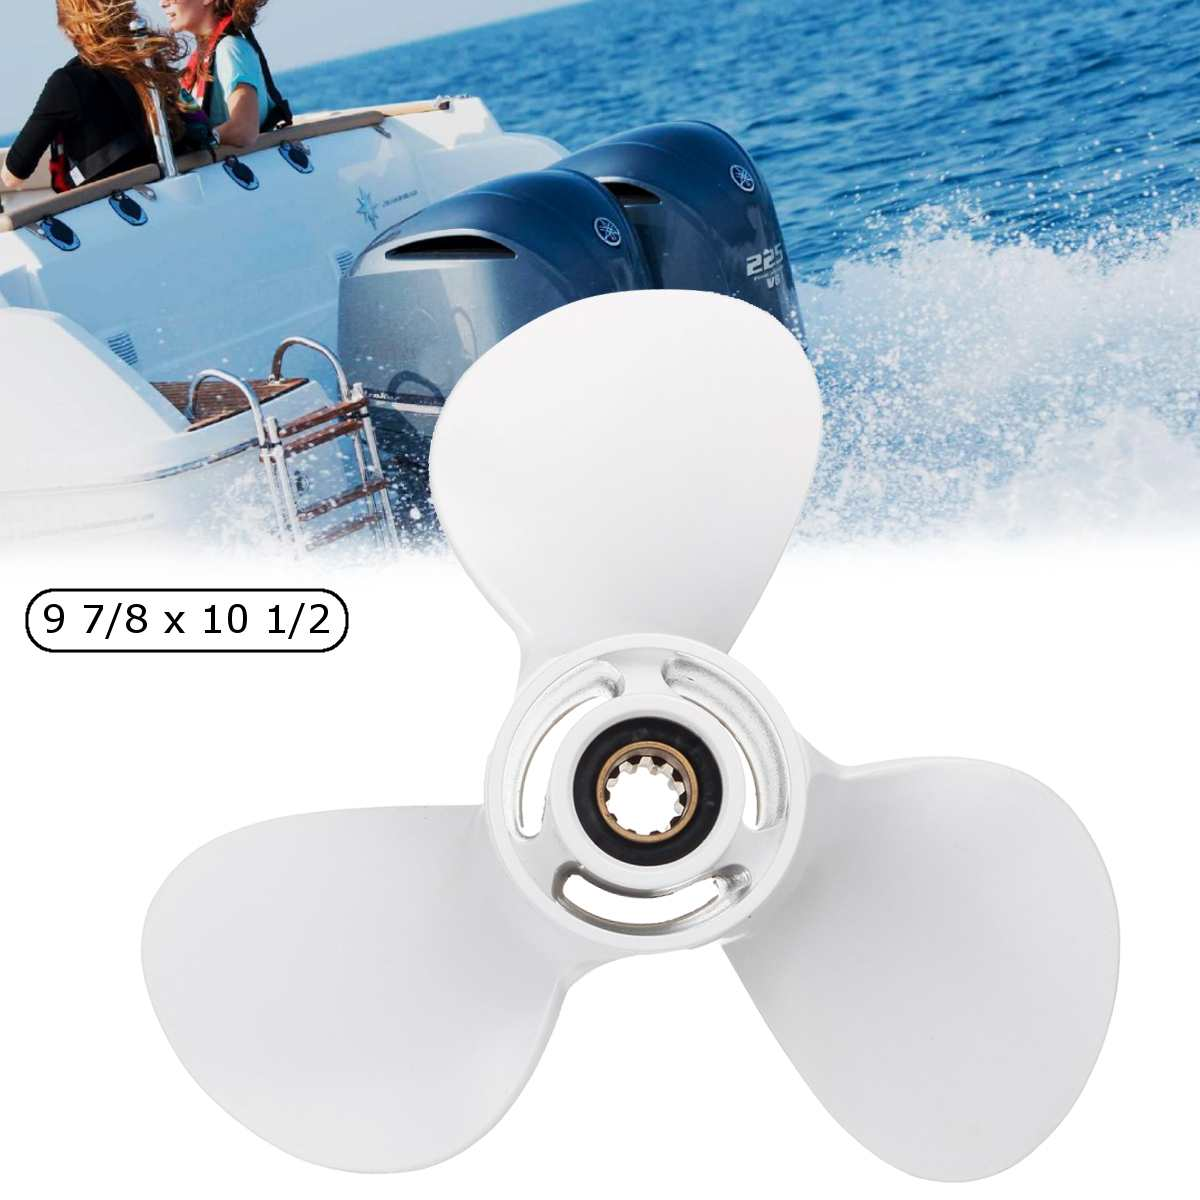 664-45945-00-EL Aluminum Alloy 9 7/8 X 10 1/2 Outboard Propeller For Yamaha 20-30HP White 3 Blades 10 Spline Tooth R Rotation